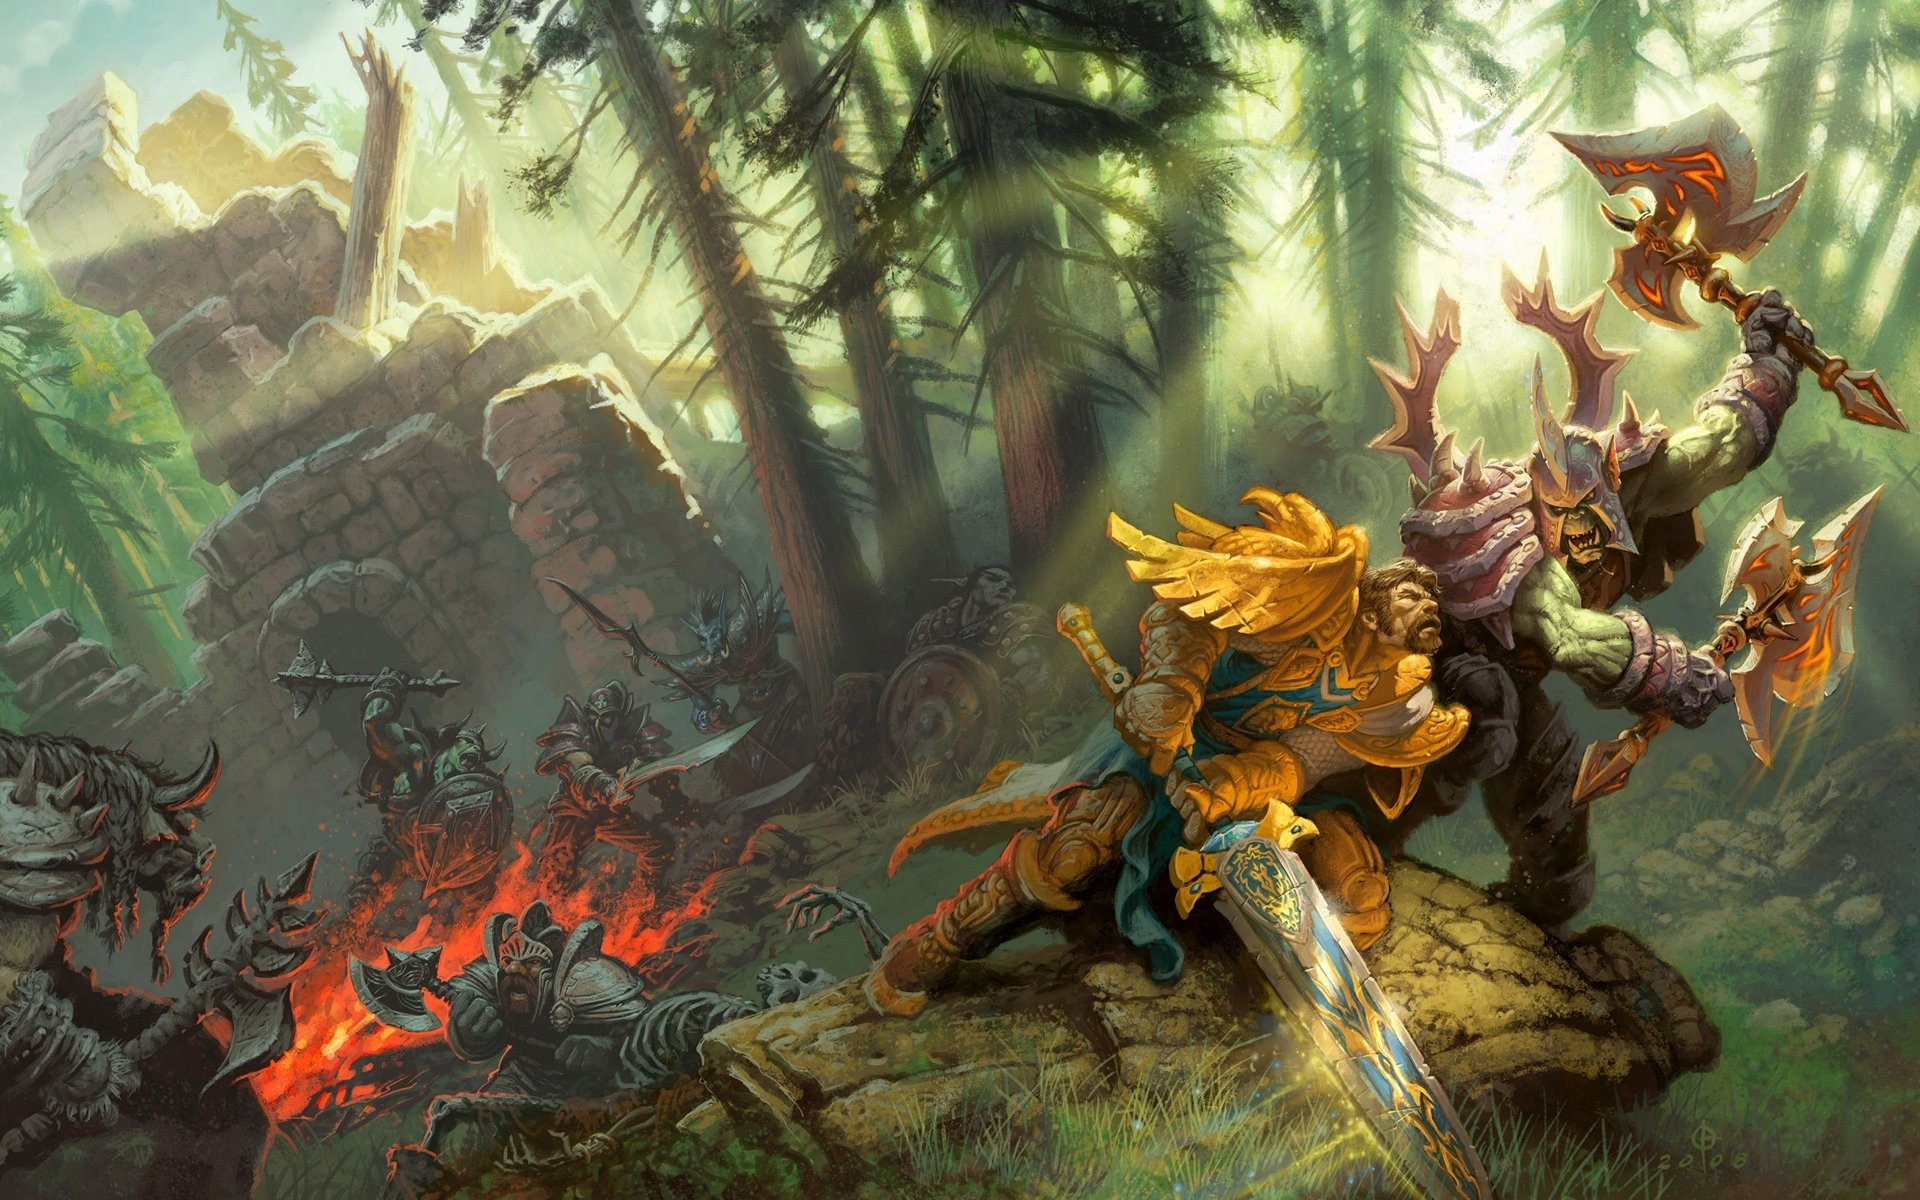 World of Warcraft Arts by Flickr user foeck